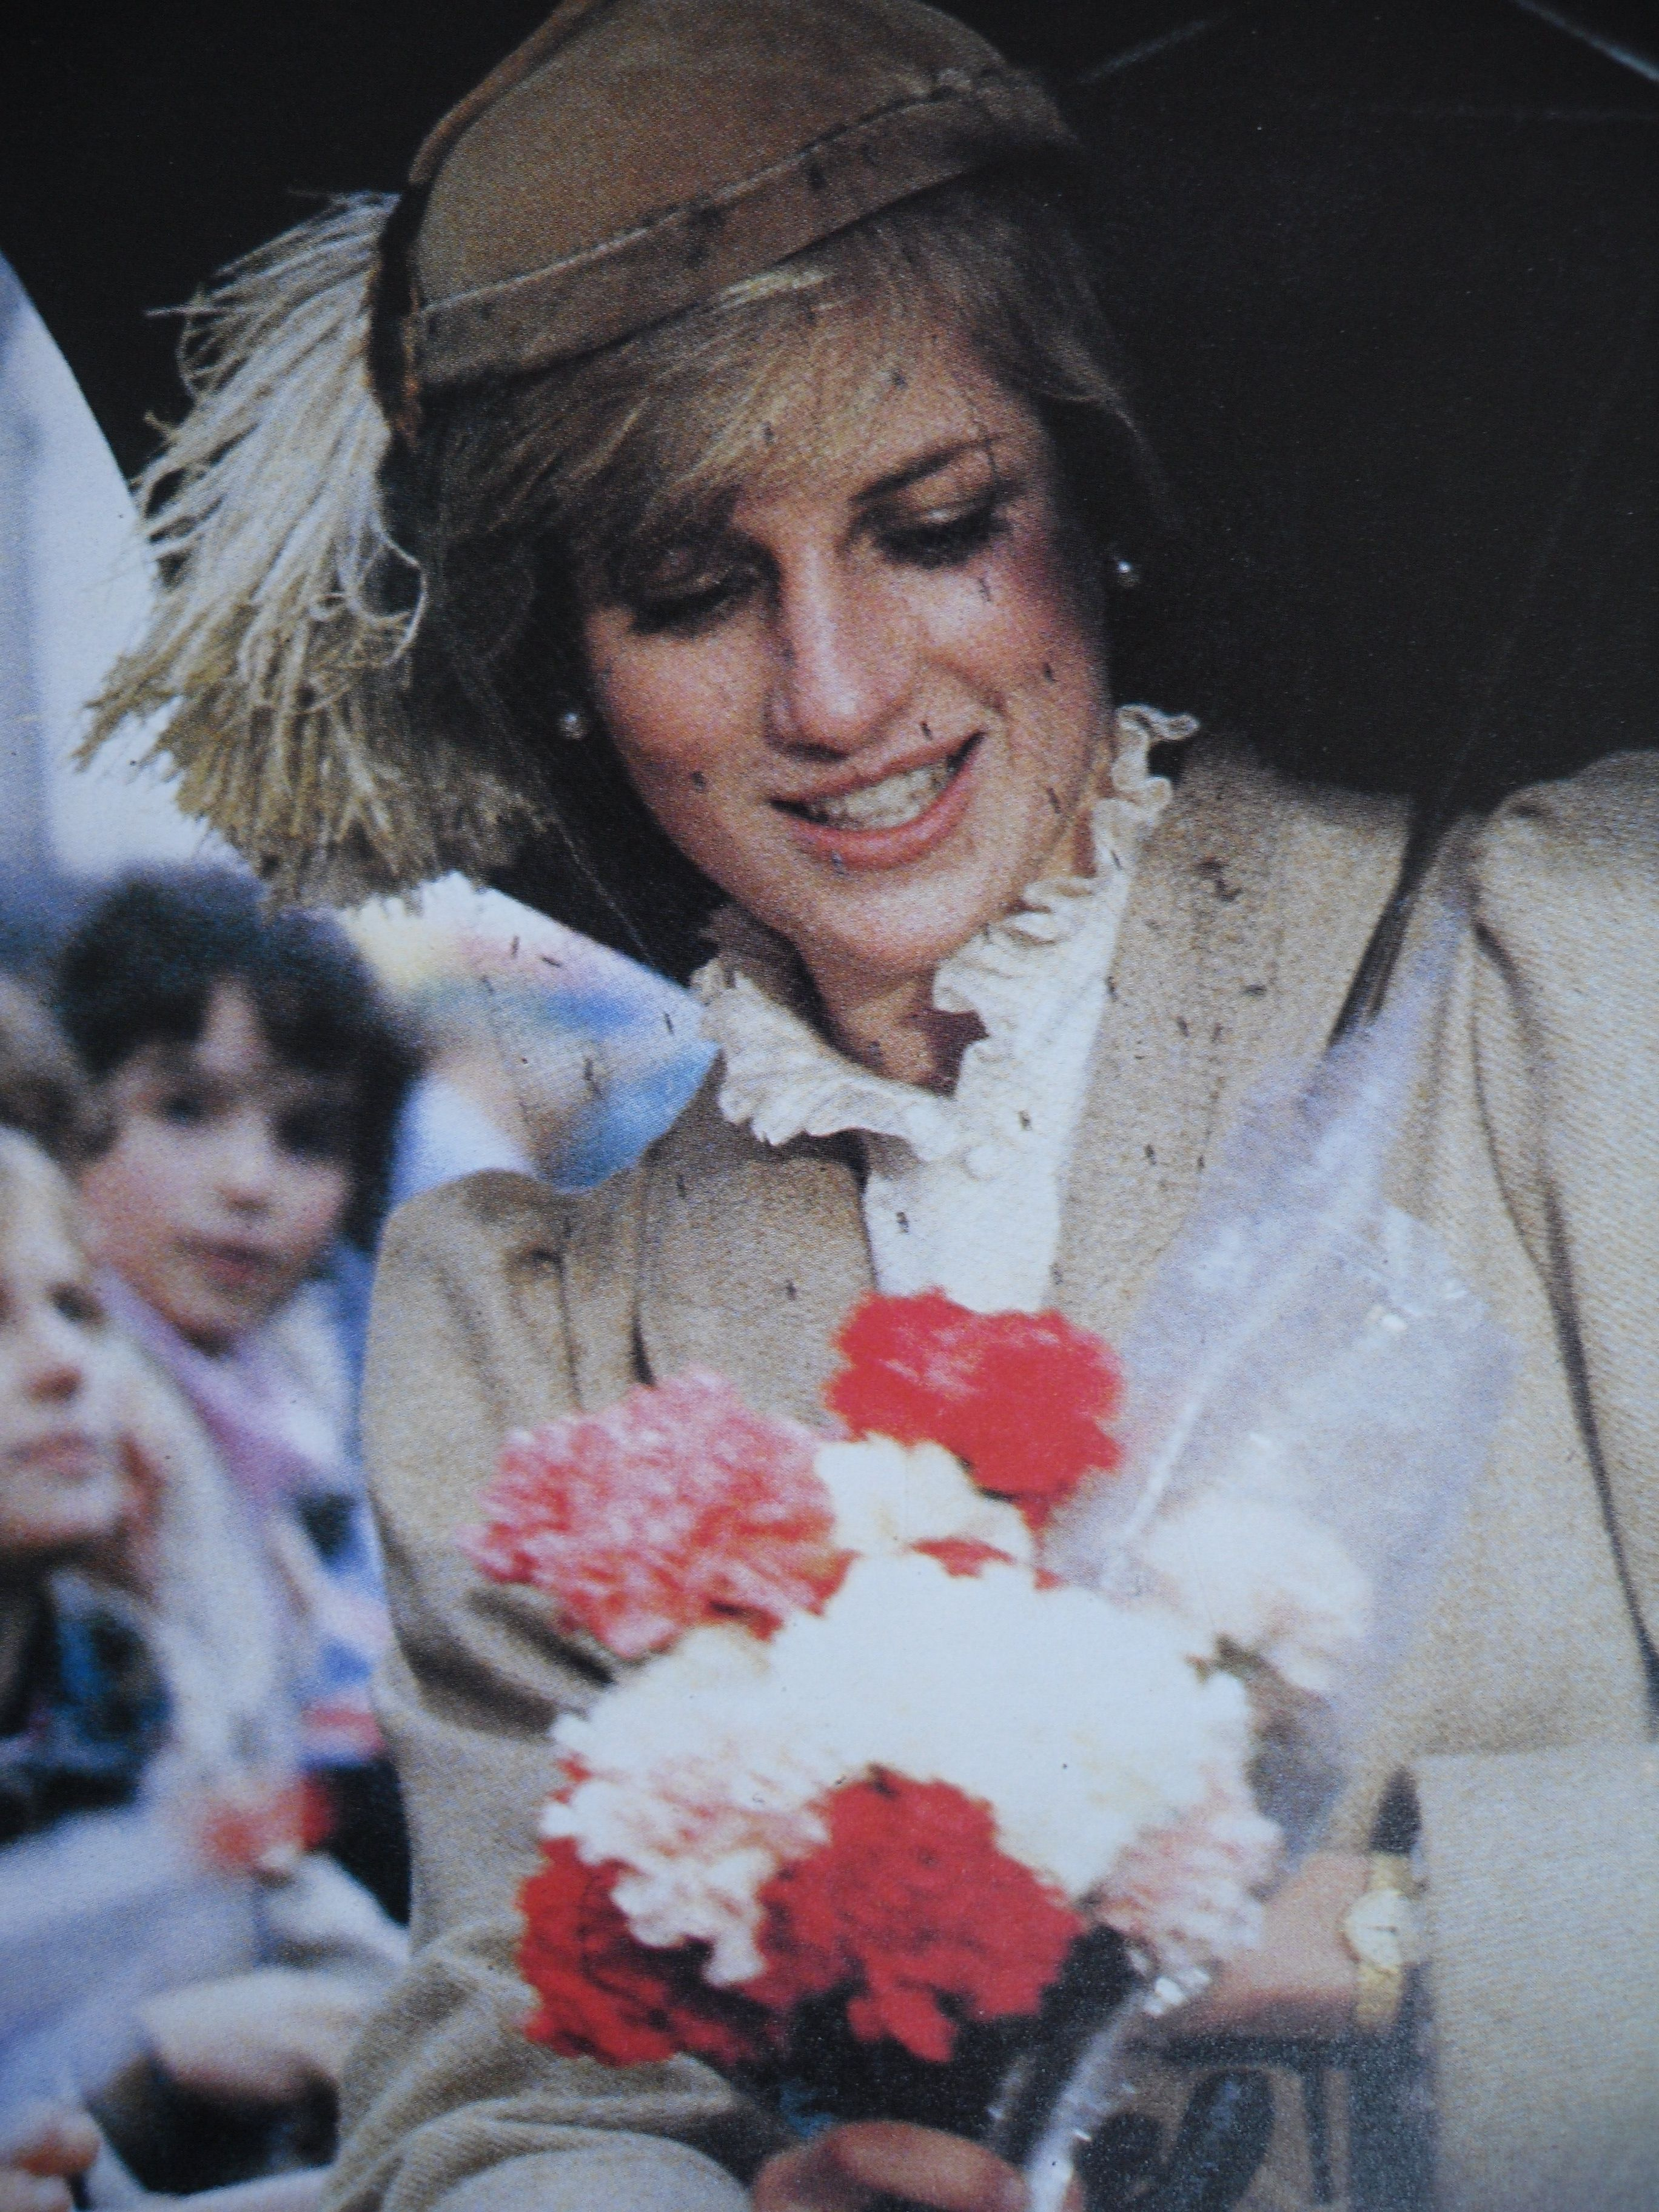 October 28, 1981: Princess Diana attend a service at St. David's Cathedral in Haverfordwest county of Pembrokeshire, Wales.